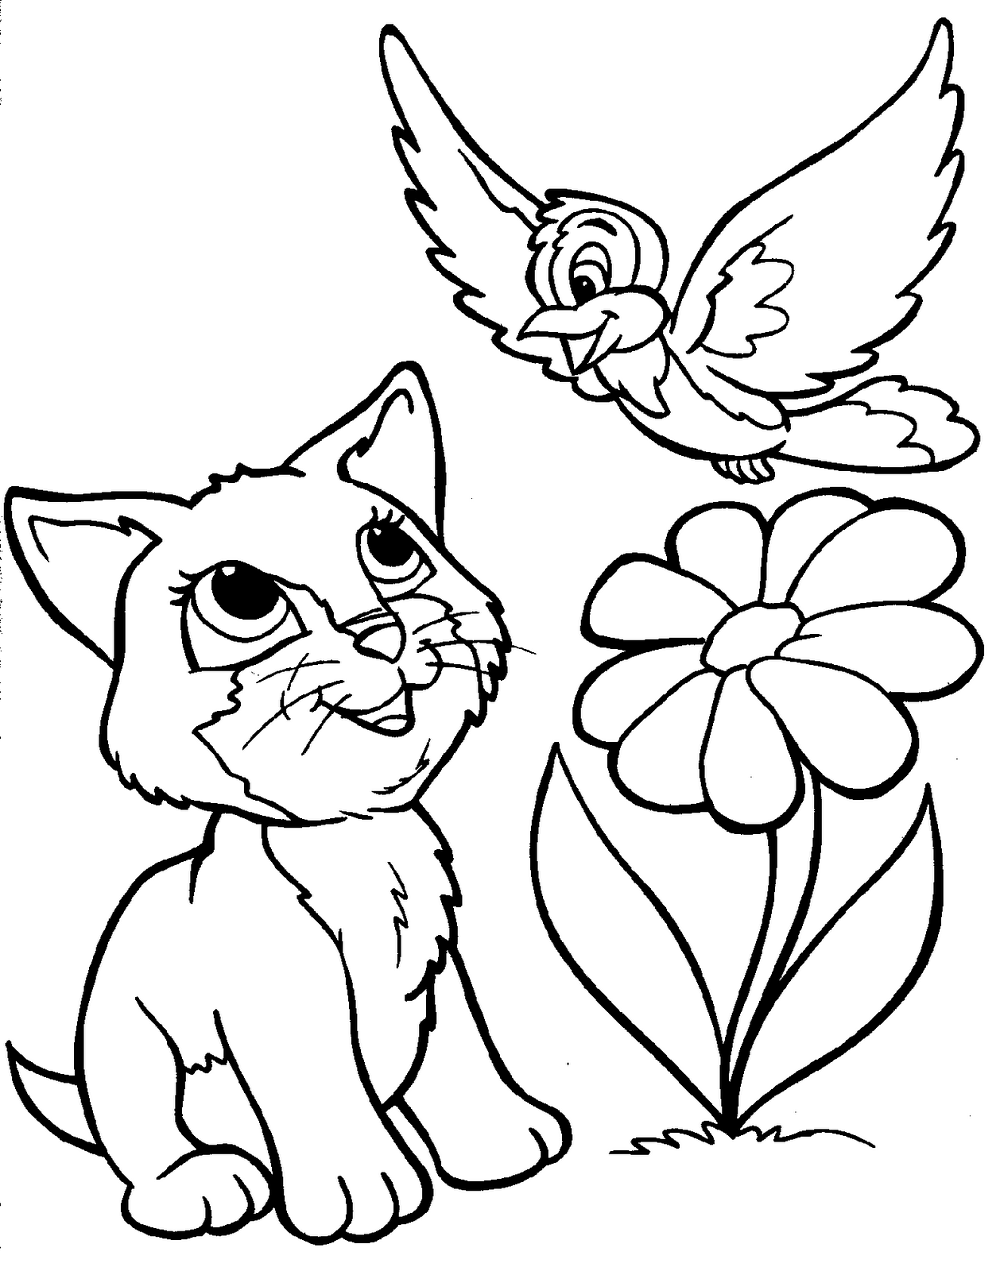 colouring pages activity